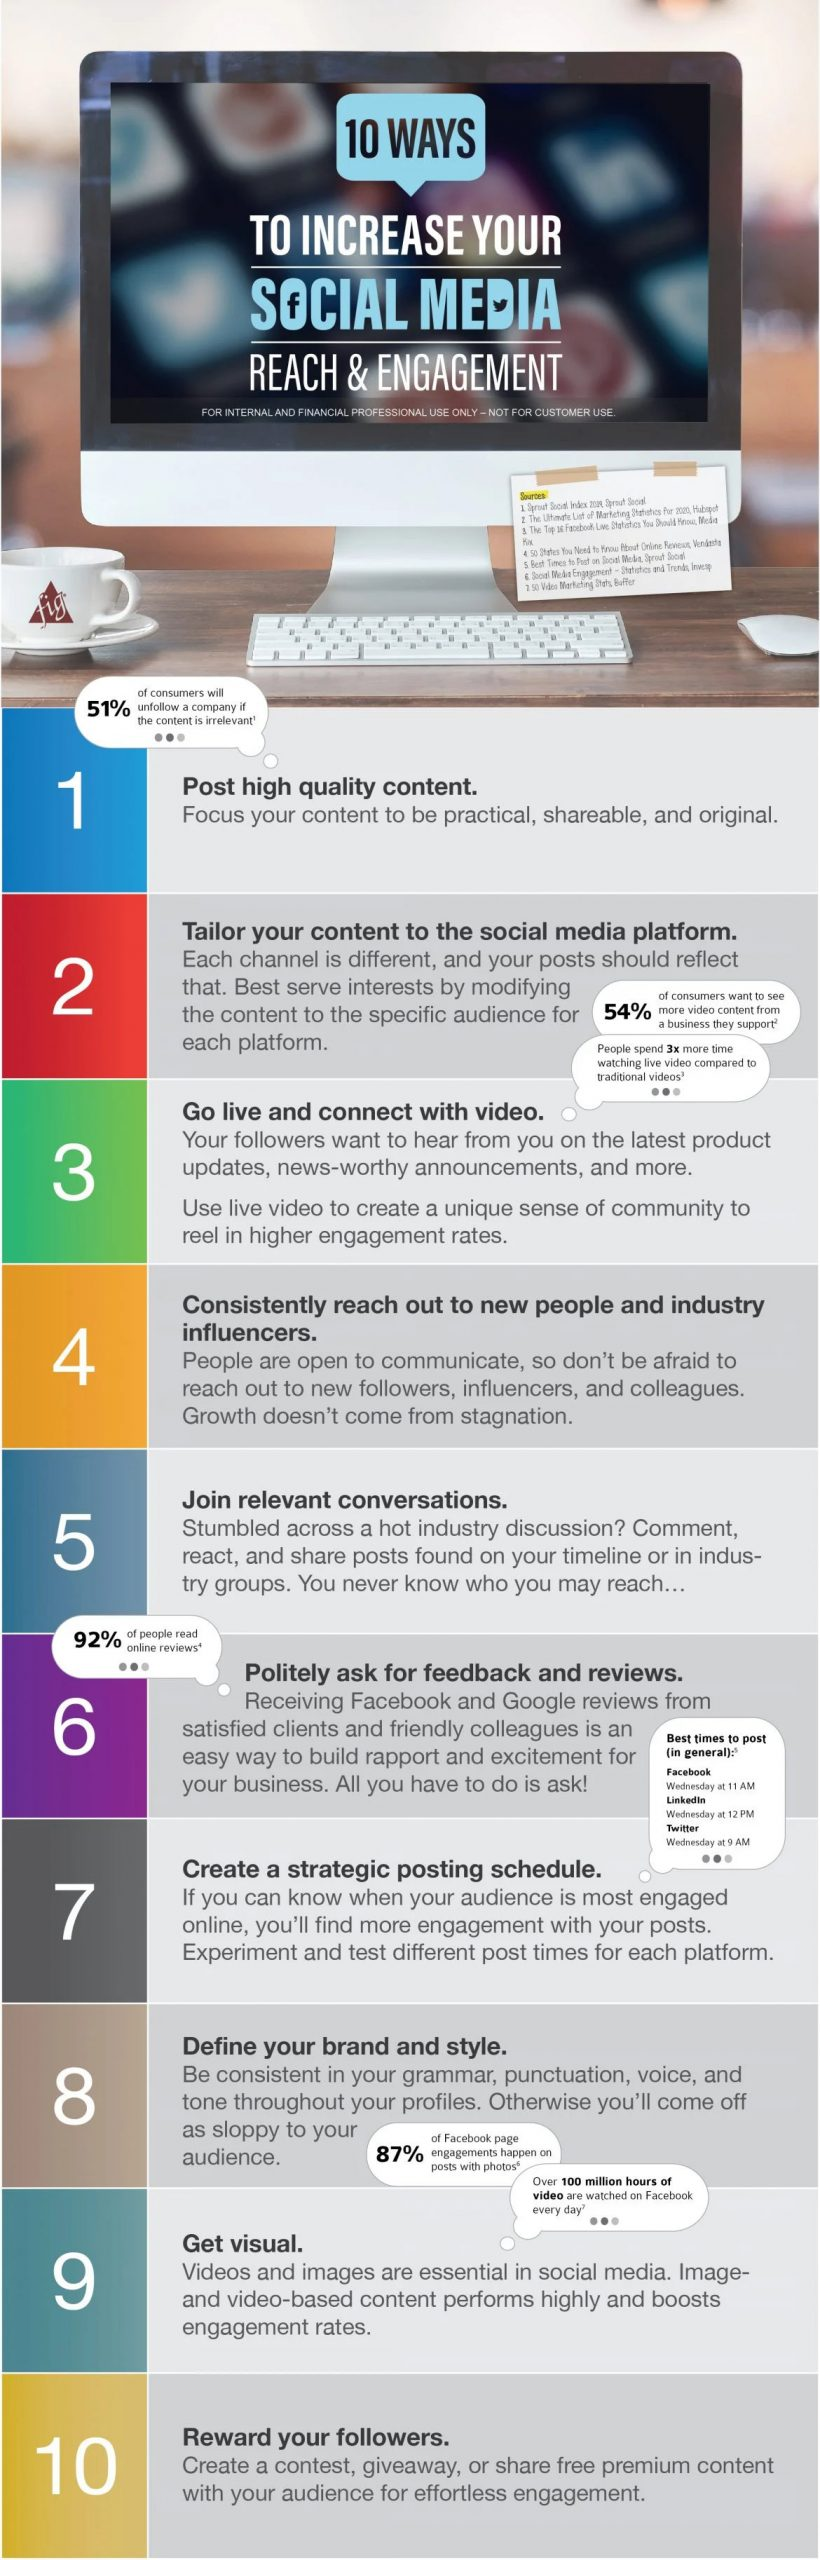 Infographic: 10 Ways to Increase Your Social Media Reach and Engagement